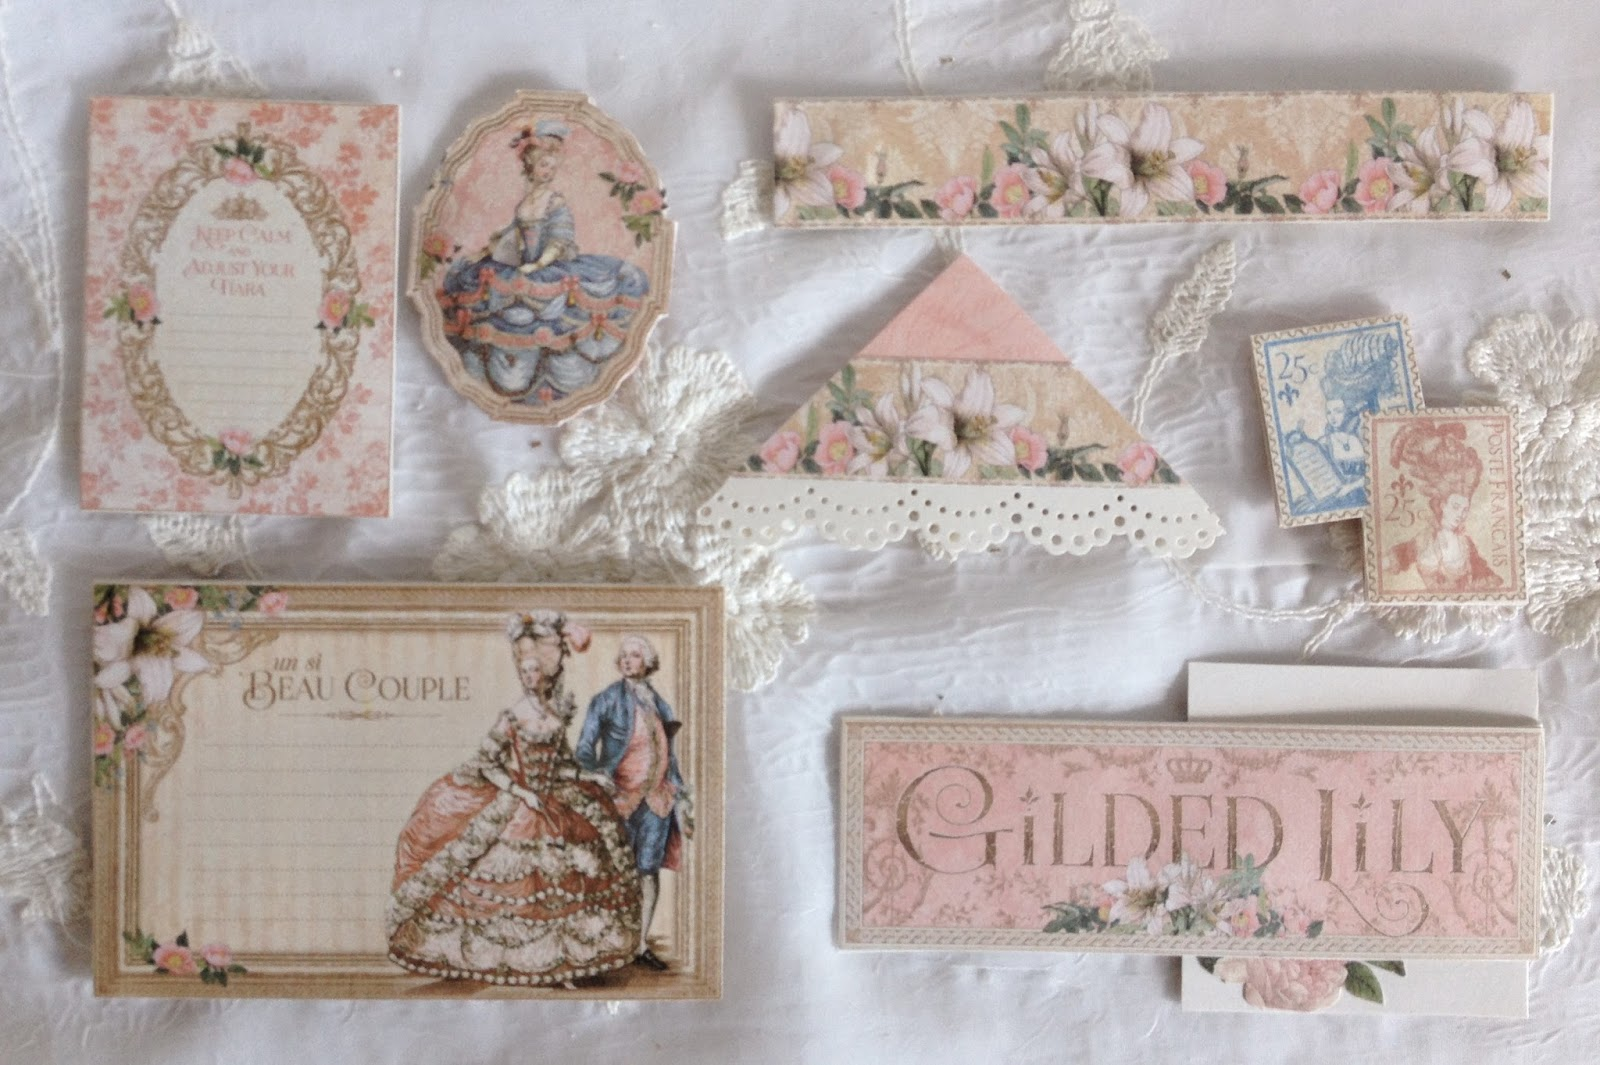 How to make a romantic scrapbook - This Are Great To Hold Different Notes In Place On The Pages The Album Is Bounded Together With Elastic Cord Have A Tutorial On How To Make This